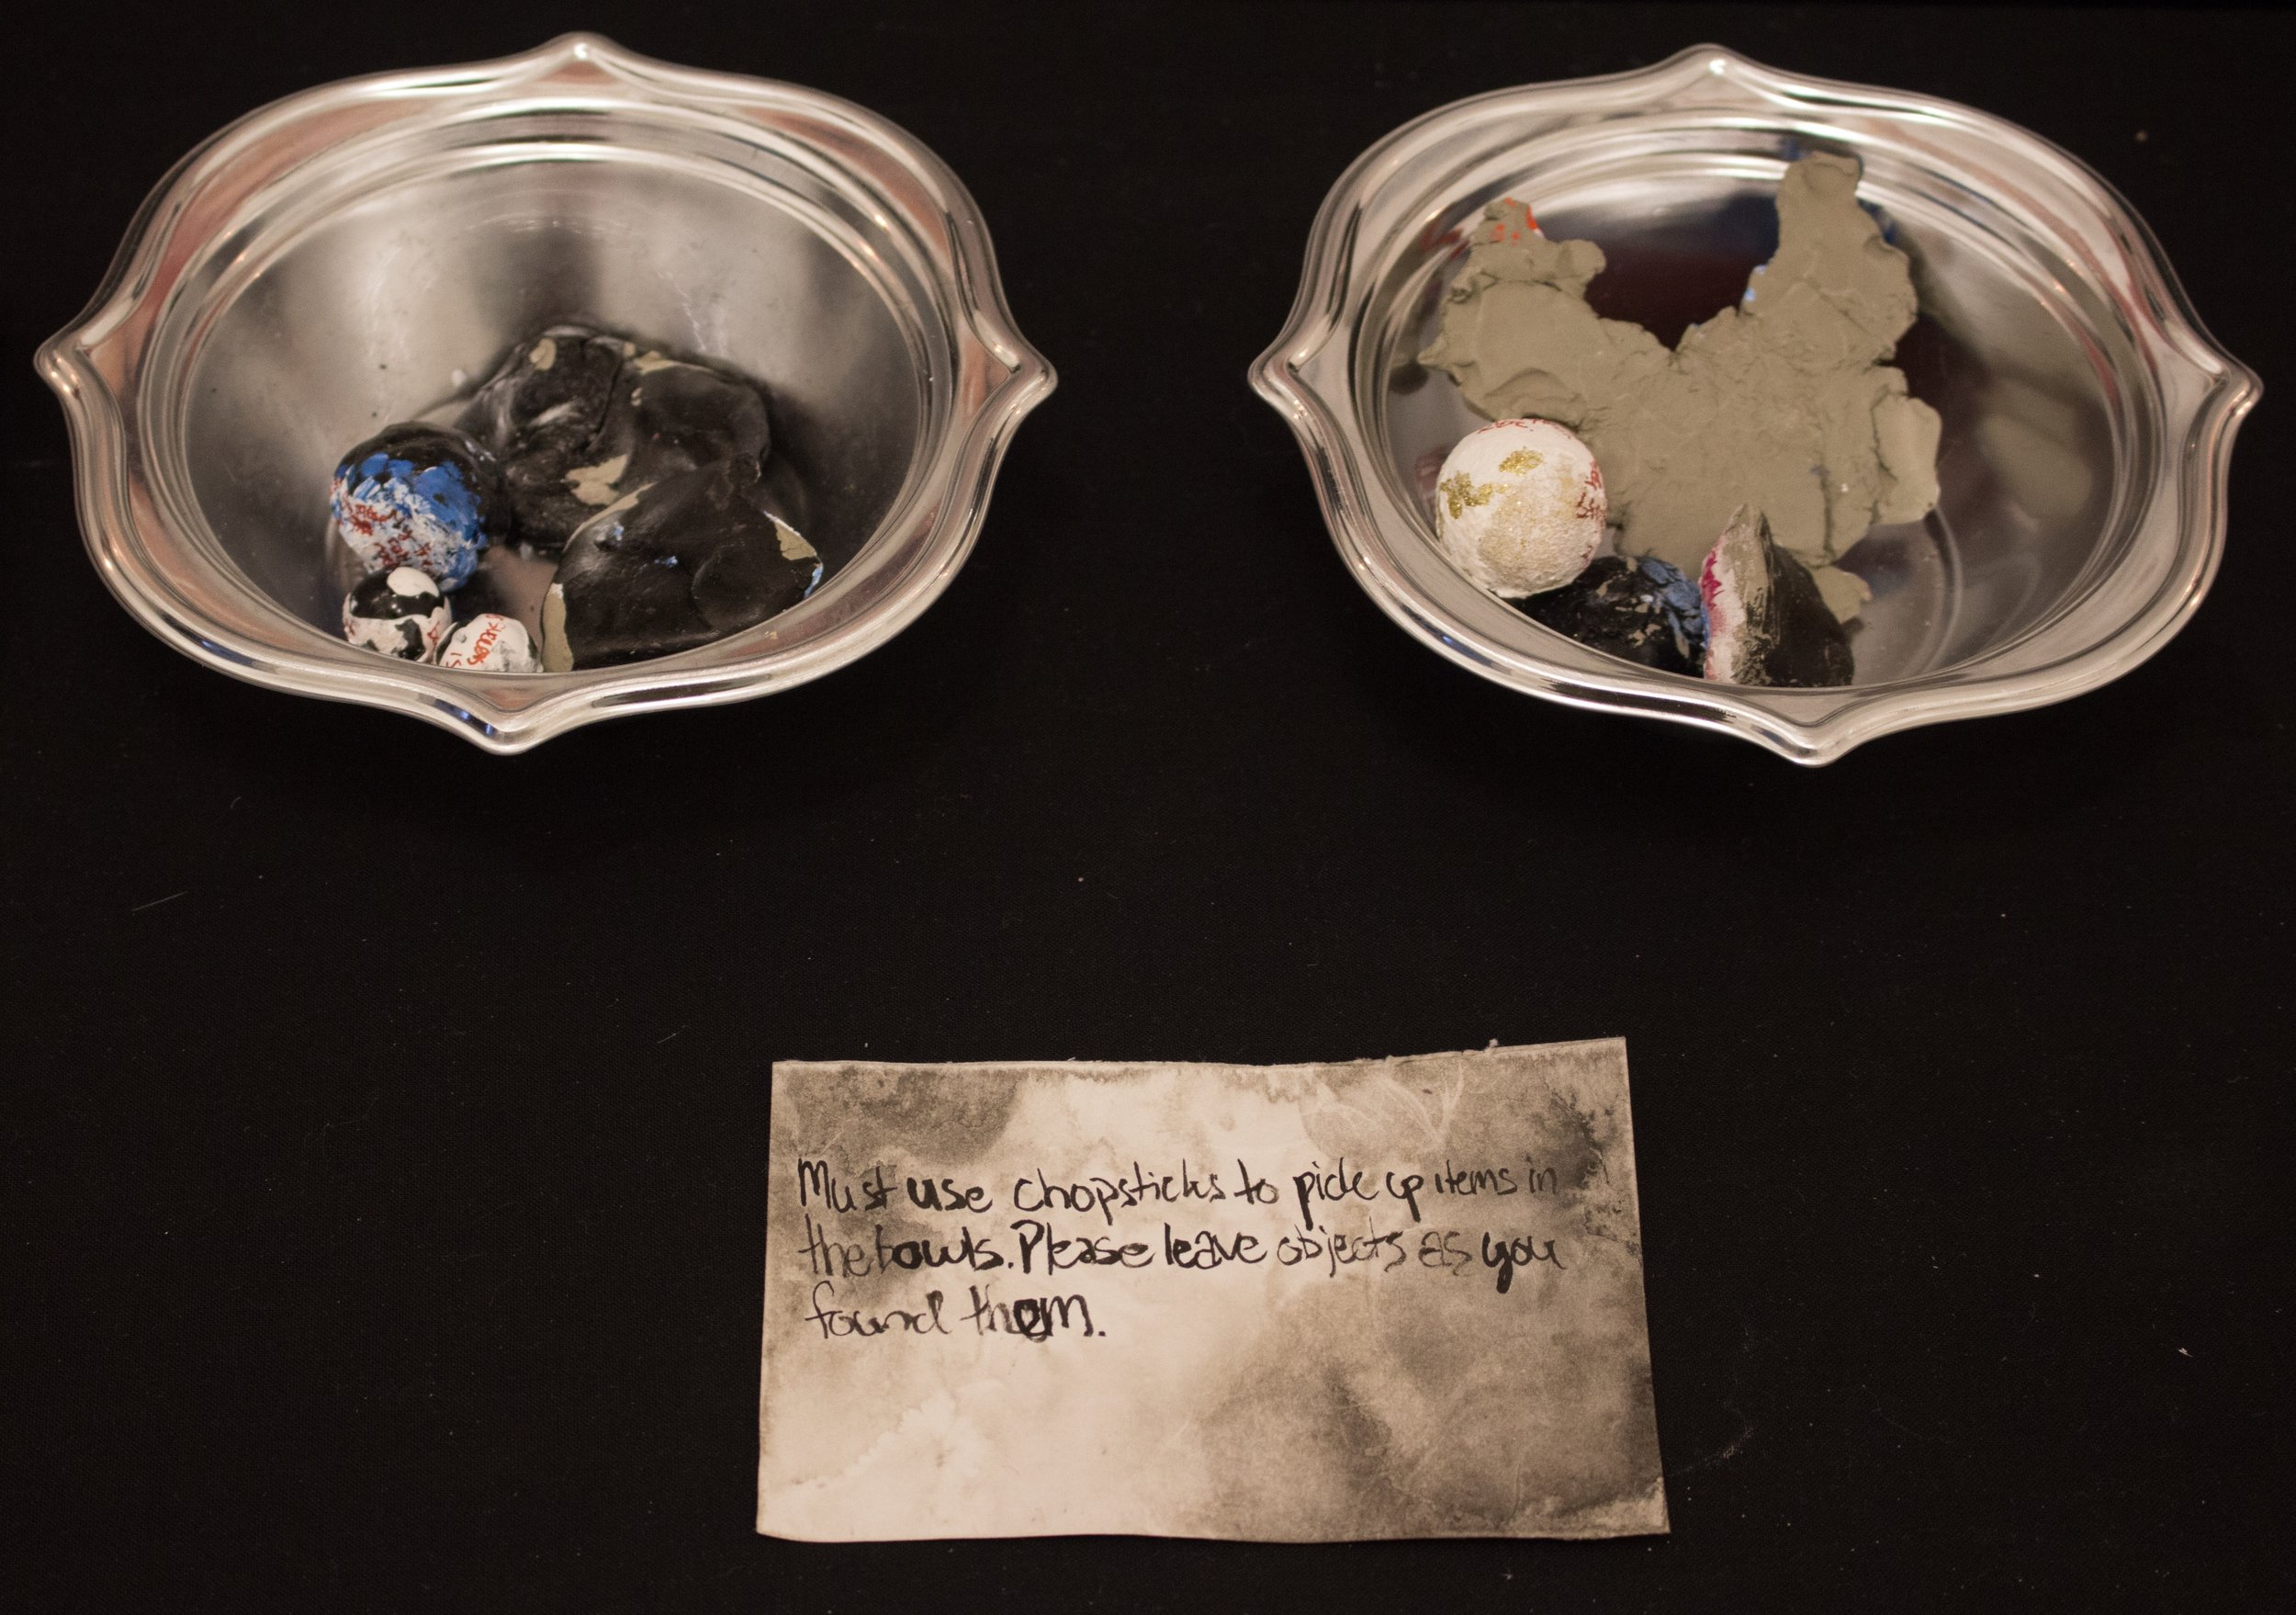 - In this installation, I included a participatory component, which take the form of the two bowls of small objects. To view the objects, one is only permitted to do so if one is capable of picking them up with chopsticks. On the other side of the objects, there may be some imagery or text describing my own experience with holding these identities.